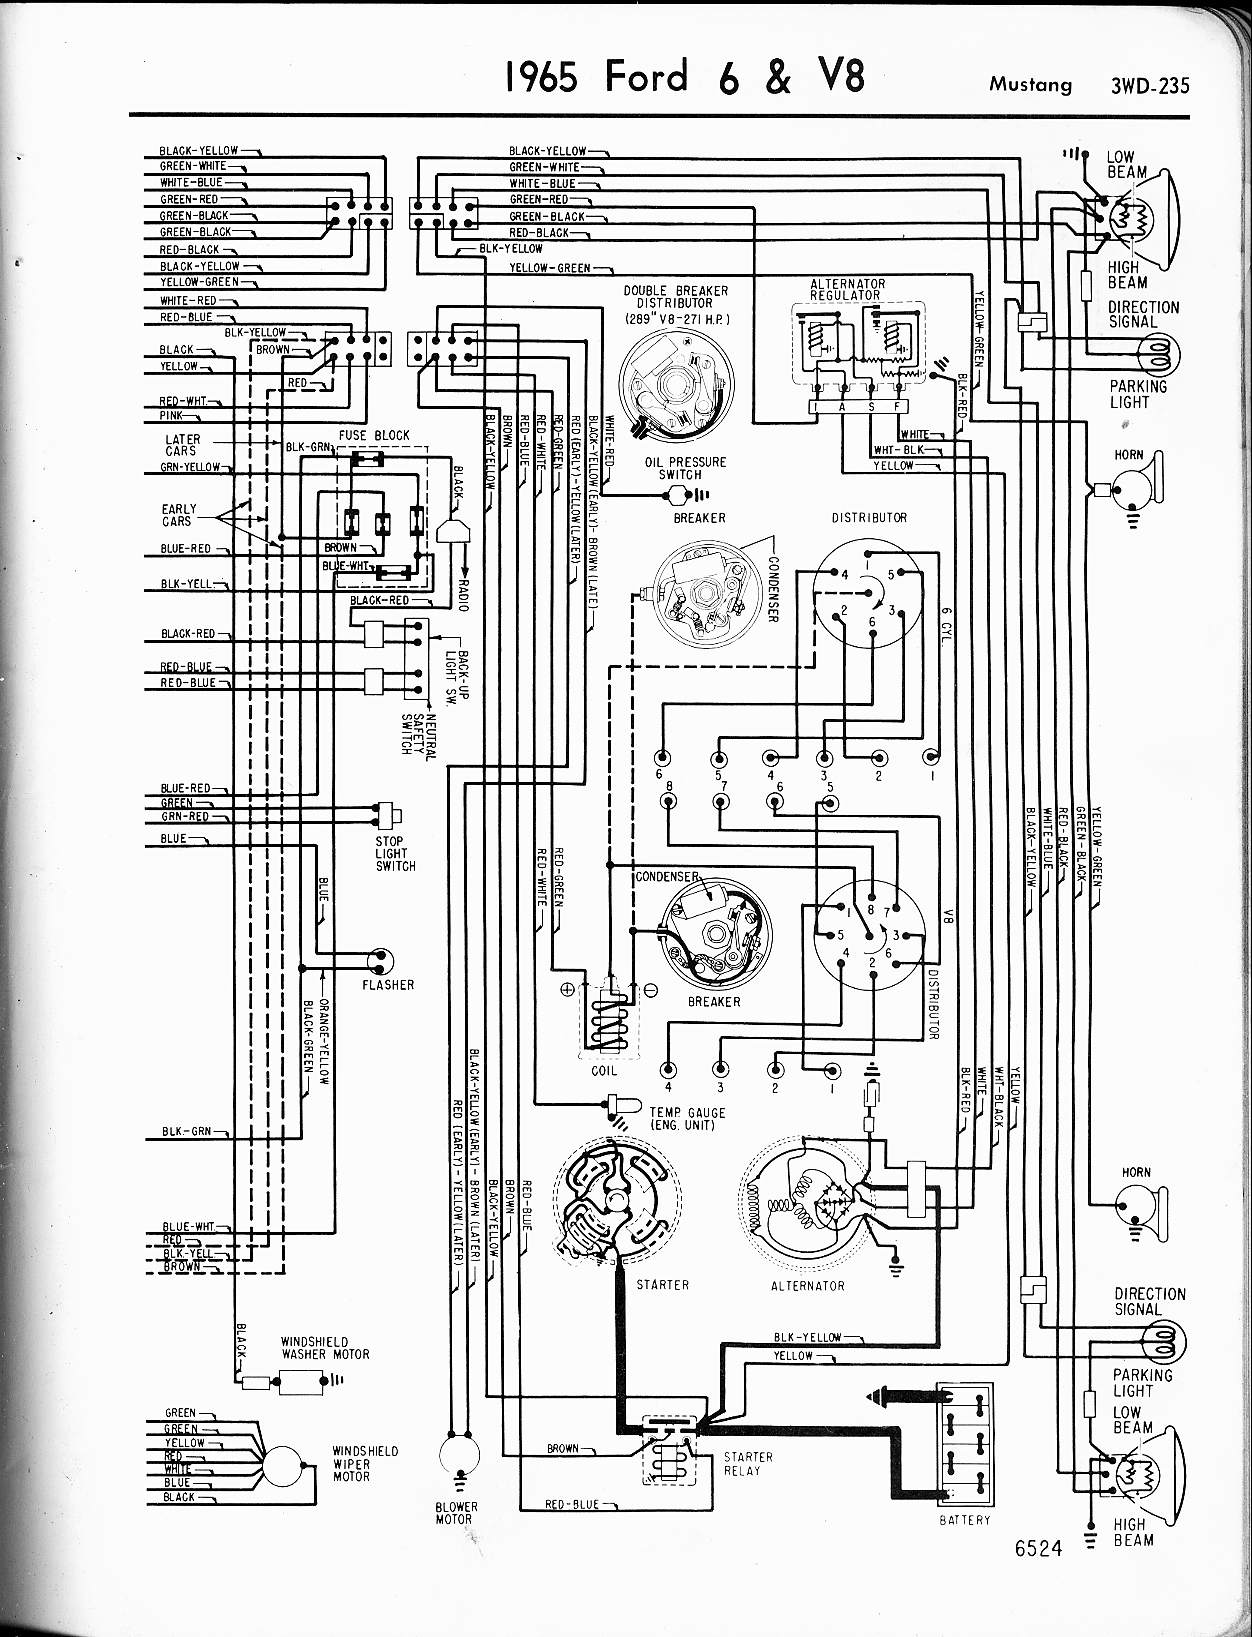 MWire5765 235 1967 thunderbird turn signal diagram wiring schematic on 1967 Cub Cadet 100 at gsmportal.co